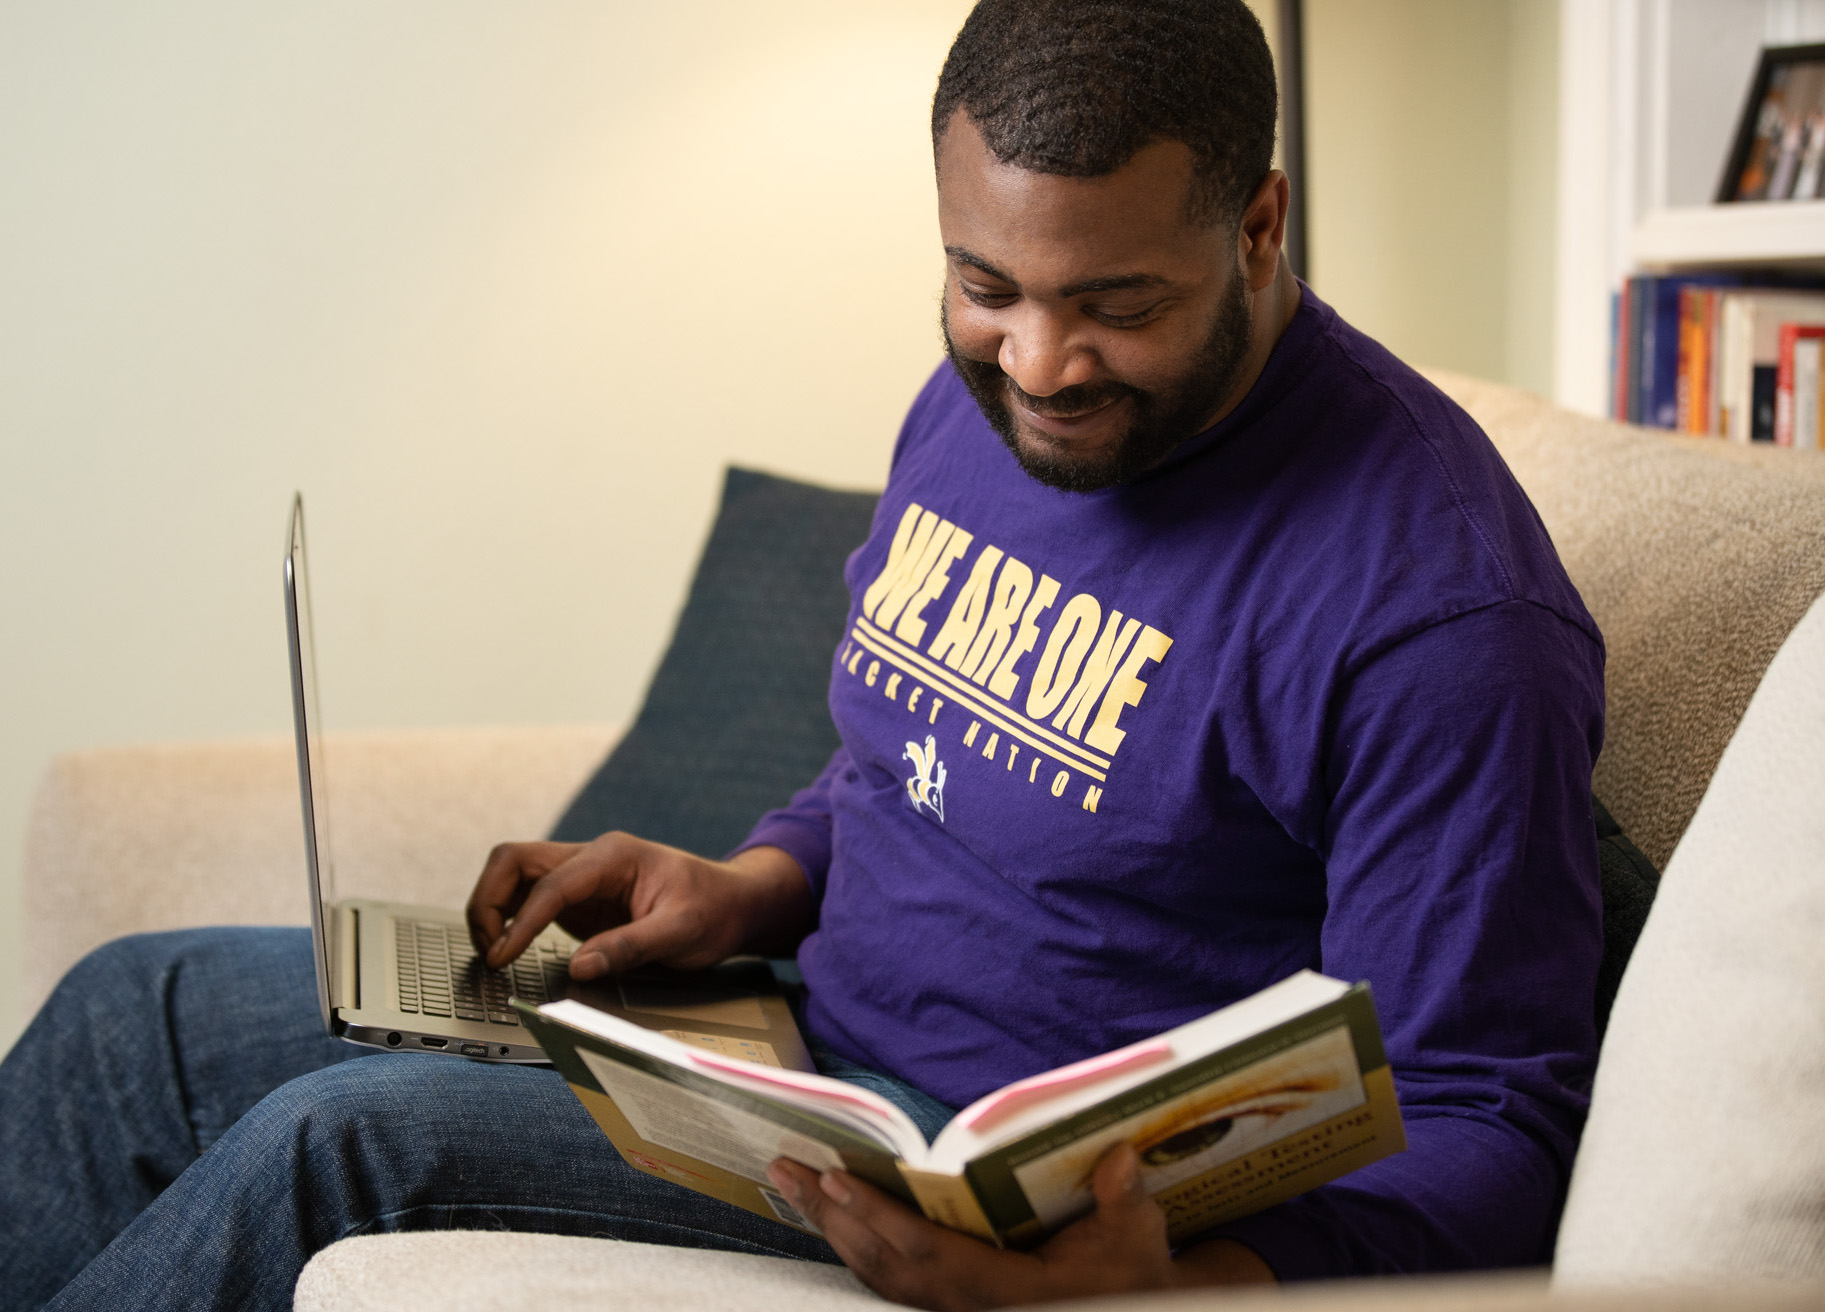 DC Graduate Student Studying at Home